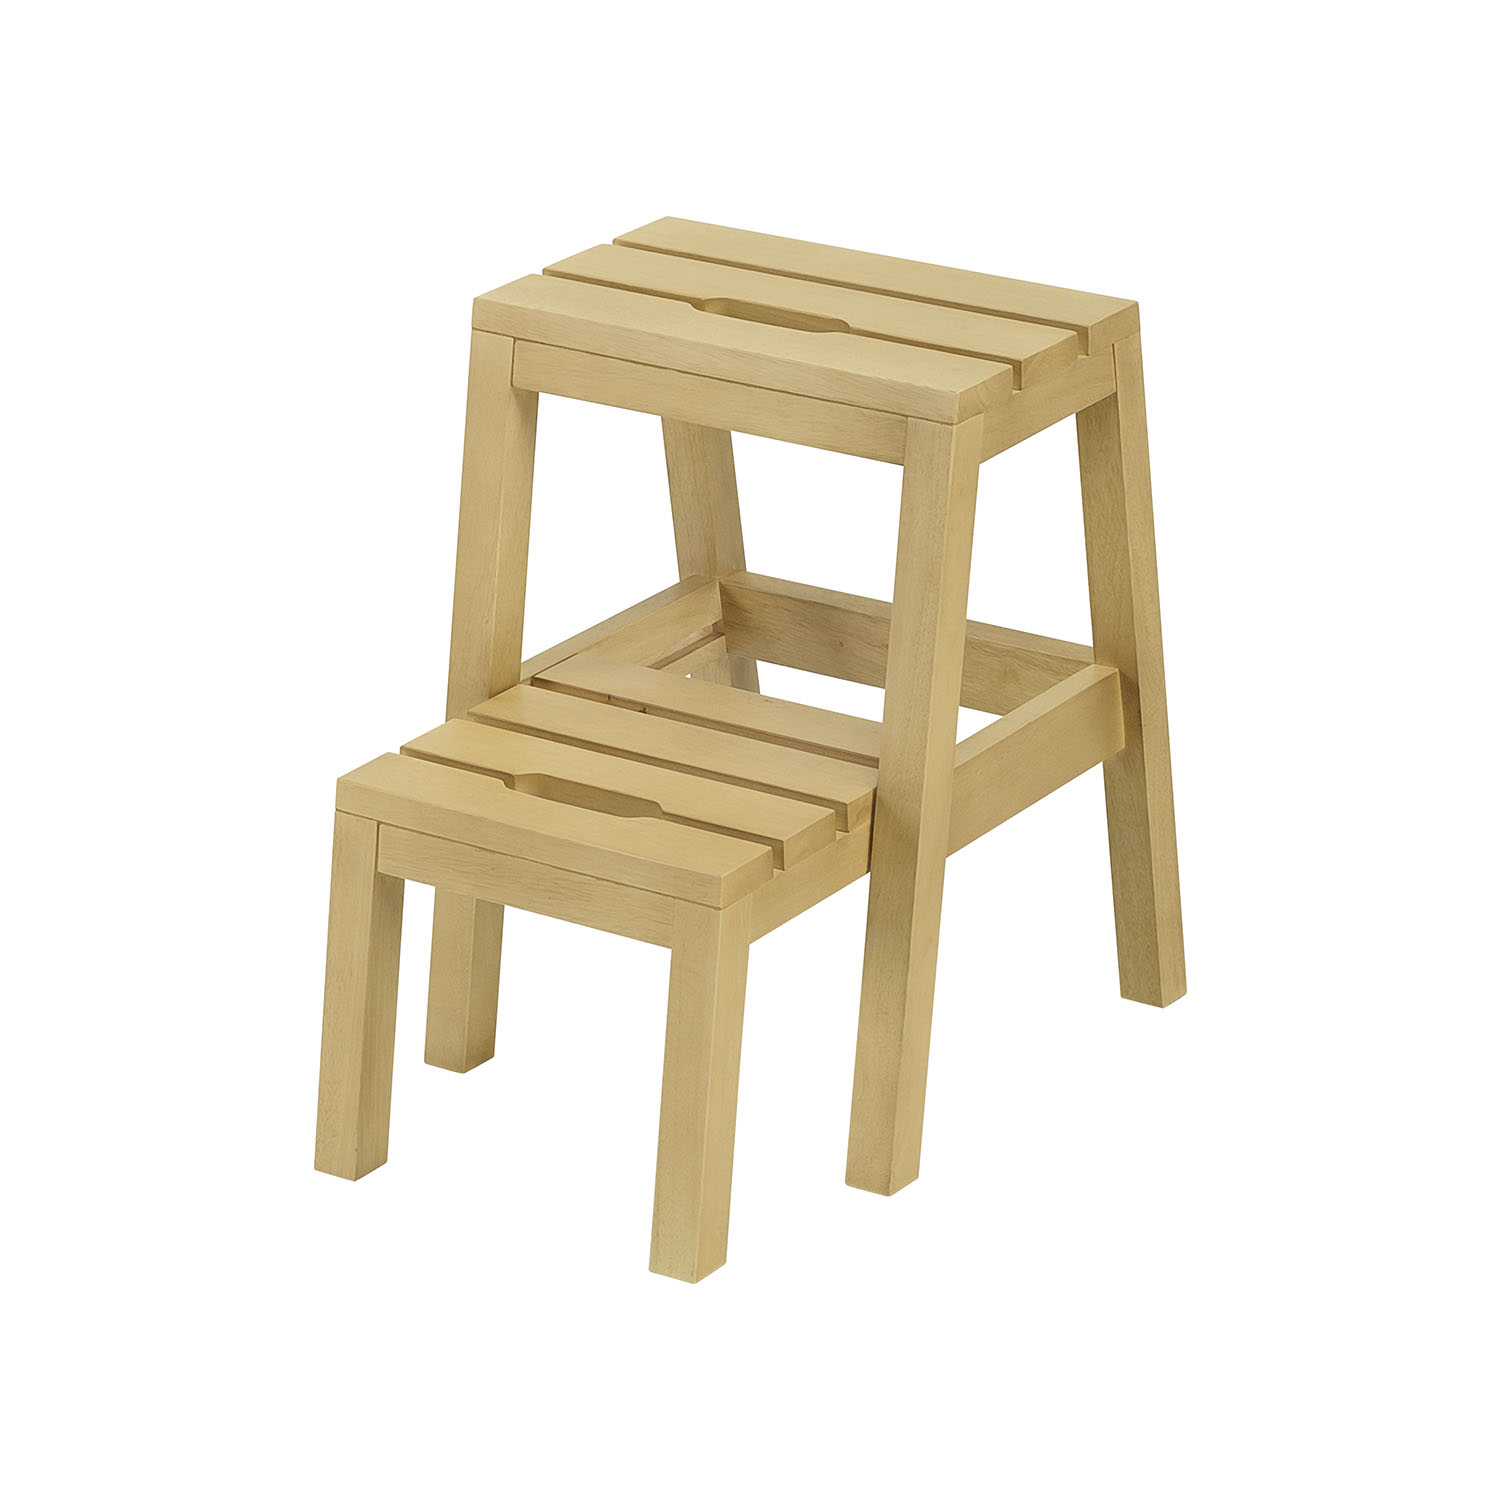 Furniture Direct DEXTRA solid wood space saver step stool